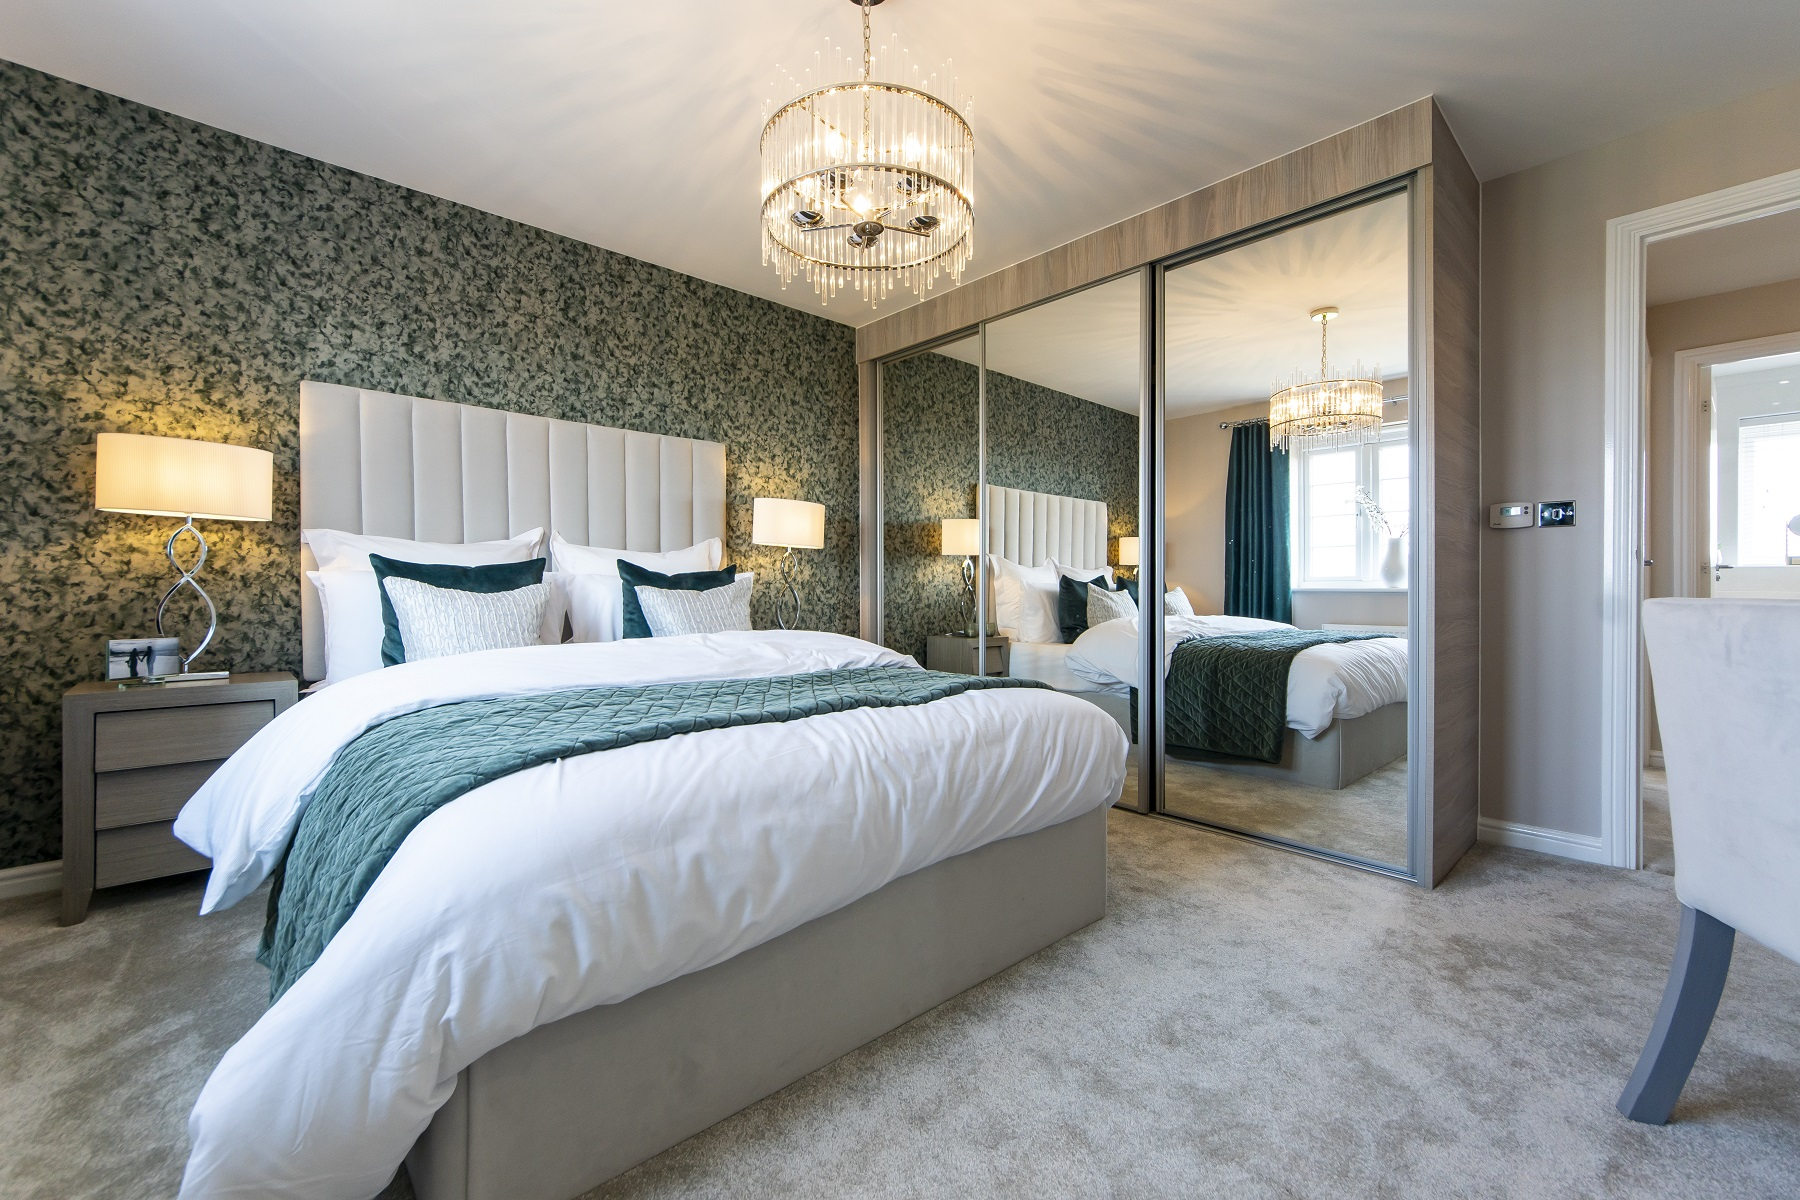 Bedroom 1 Shelford-4bedroom-showhome_15